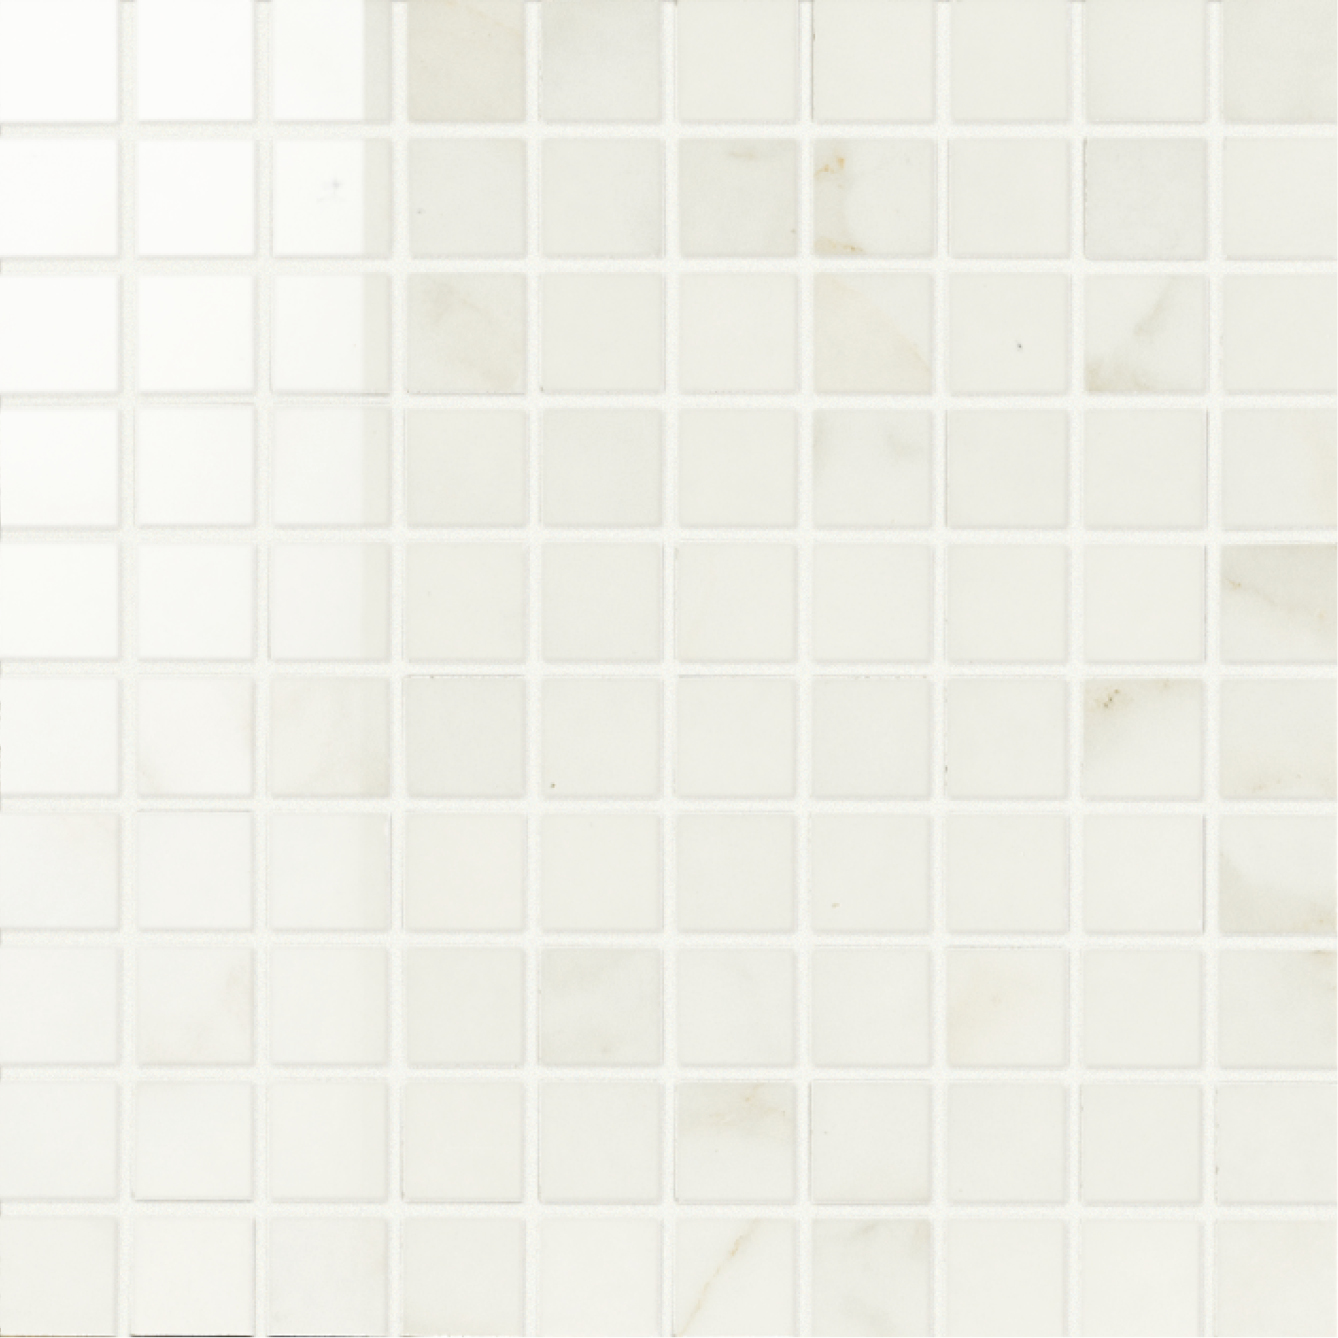 1 x 1 Muse Calacatta High Polished porcelain mosaic (SPECIAL ORDER ONLY)